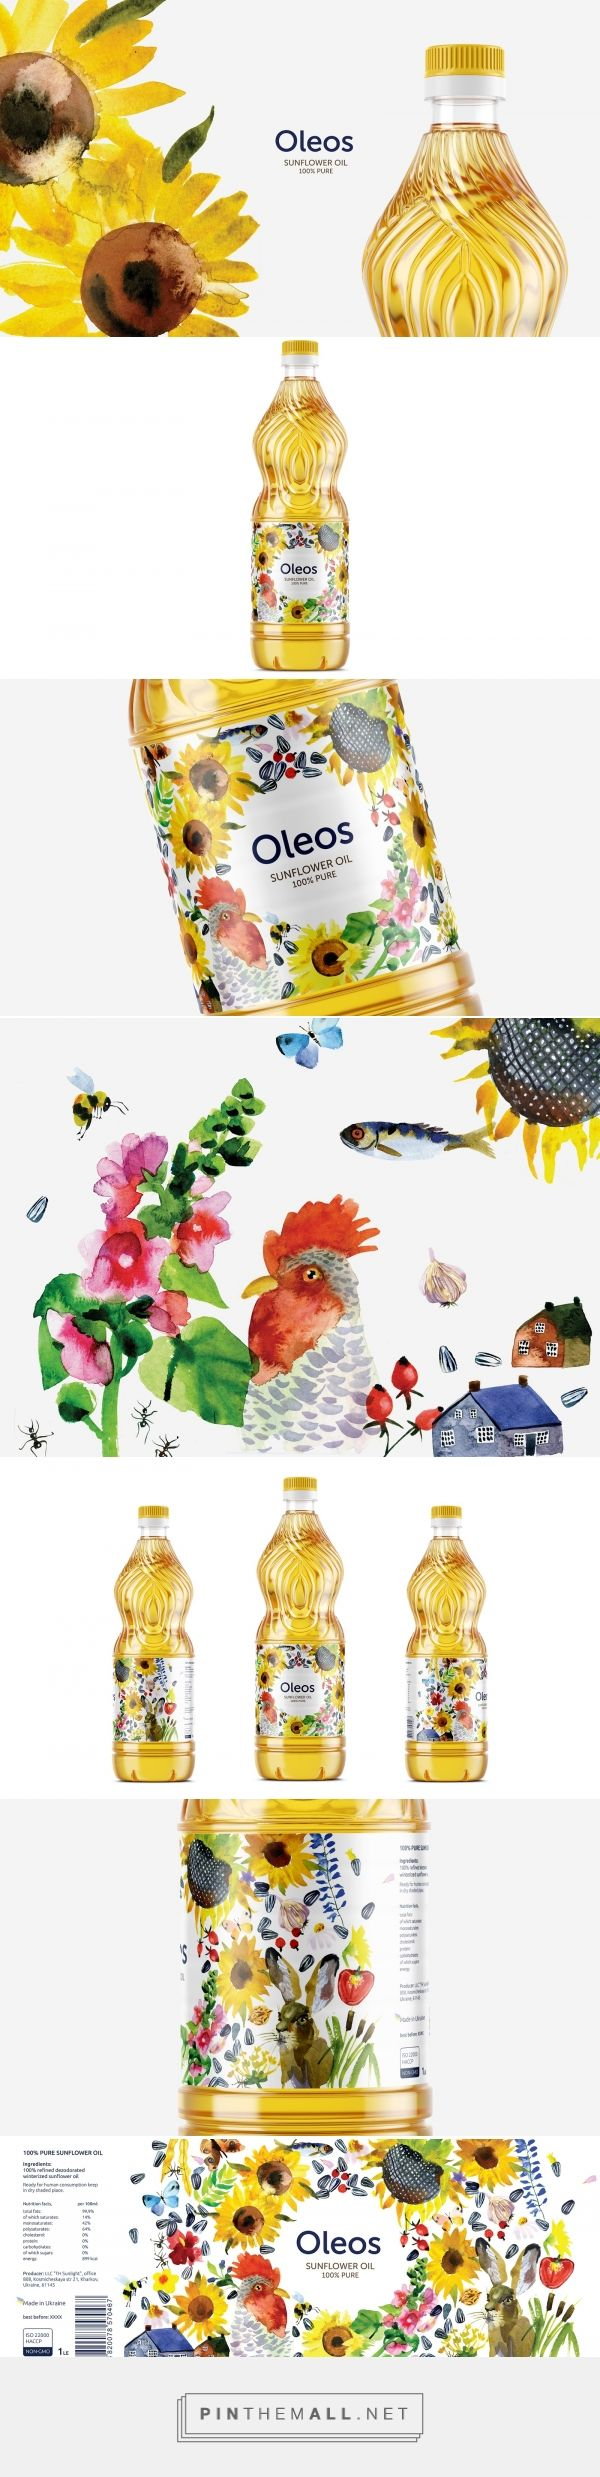 Oleos Sunflower Oil packaging design by GLAD HEAD - http://www.packagingoftheworld.com/2016/10/oleos-sunflower-oil.html